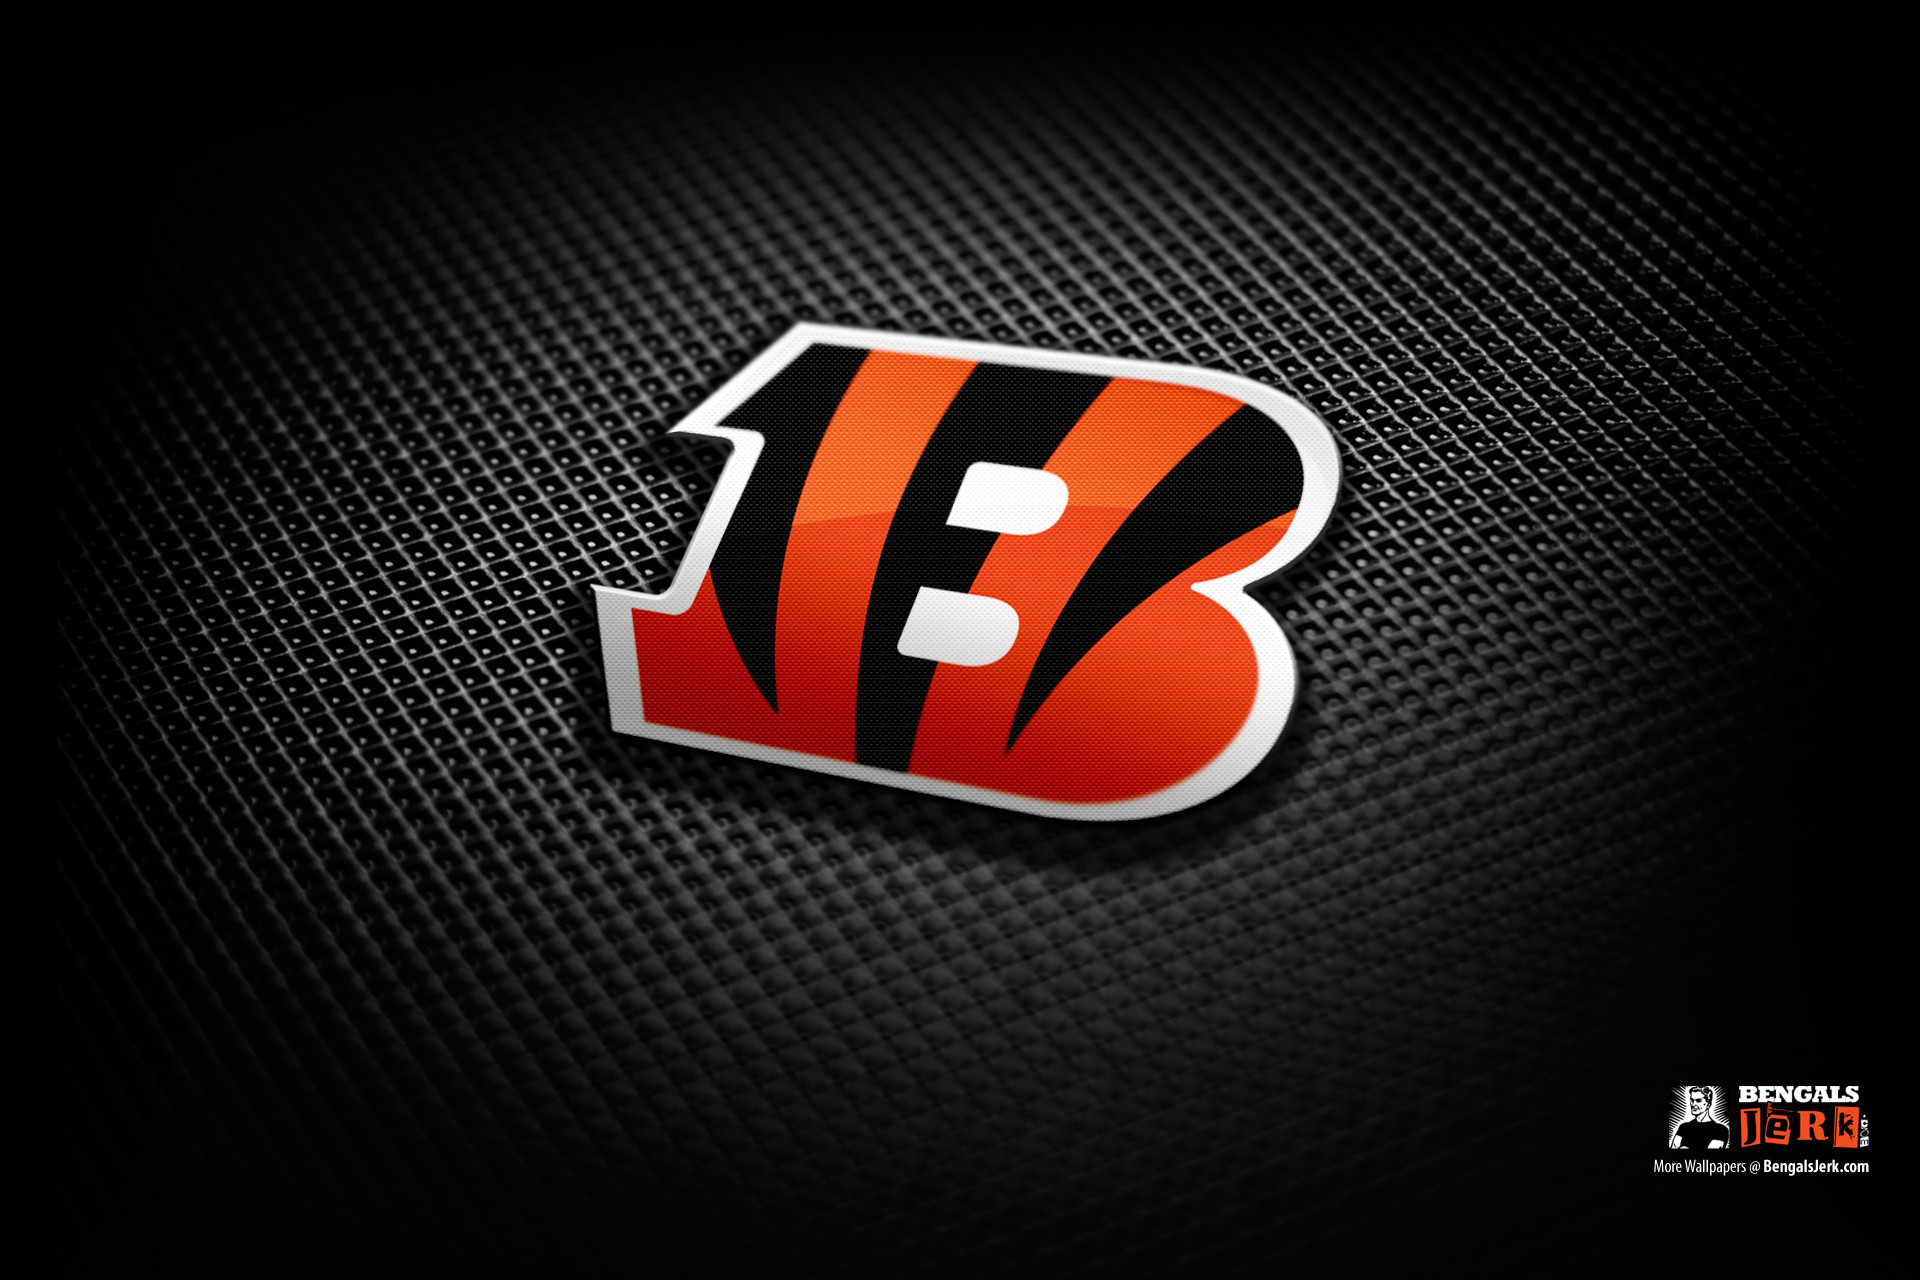 1920x1280 CINCINNATI BENGALS nfl football s wallpaper |  | 157690 |  WallpaperUP